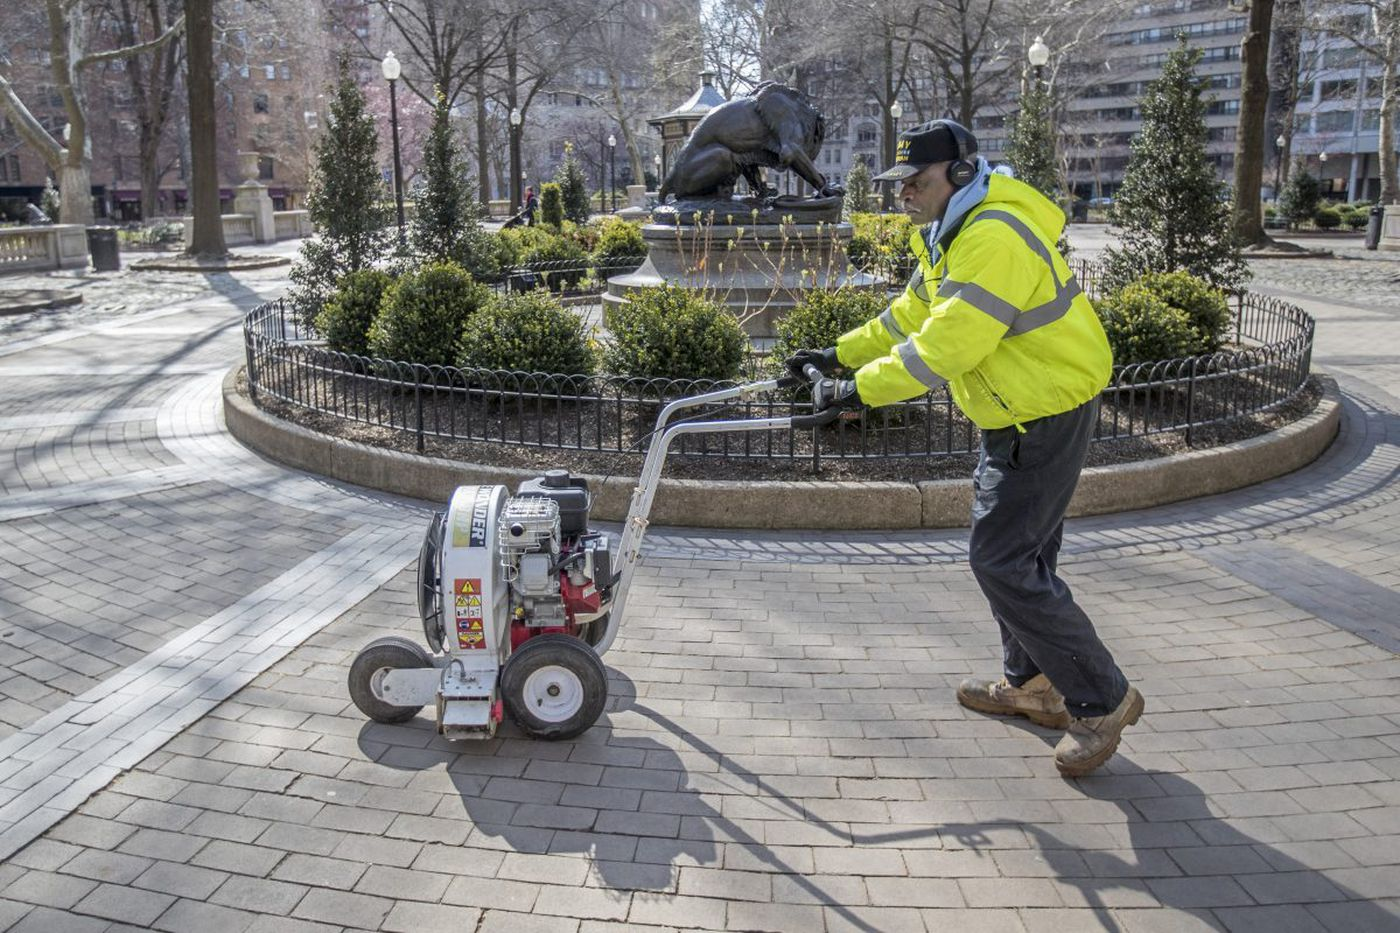 Rittenhouse Square has 89 trash cans, 139 benches, and 1 man to clean them all | We the People